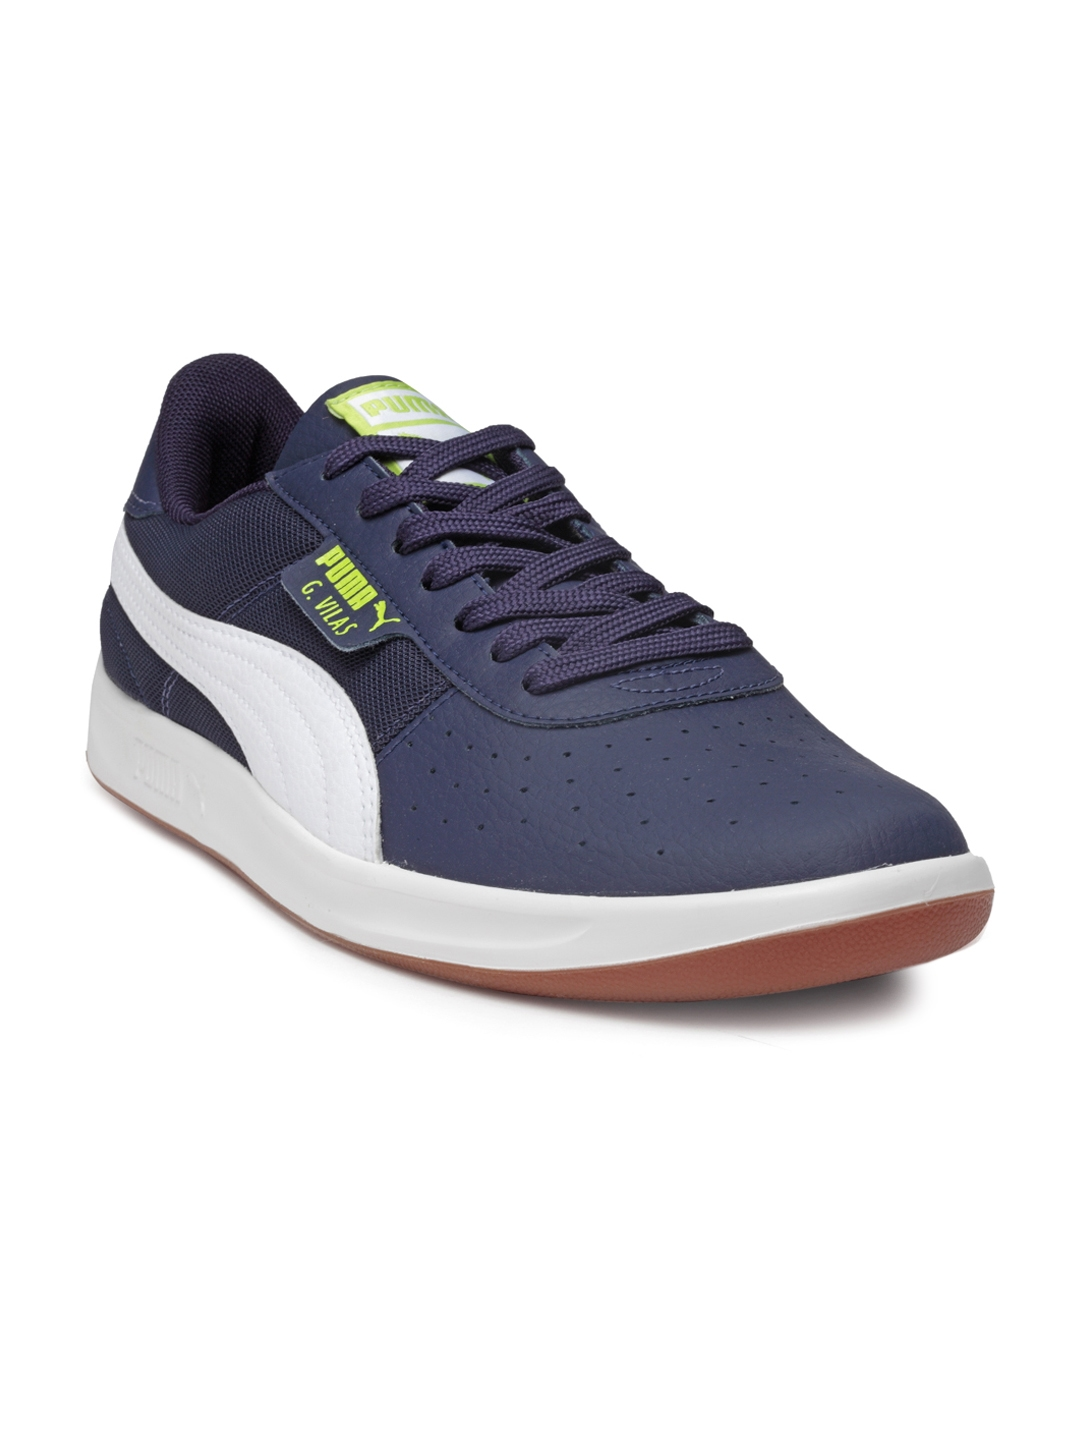 ed37fbcfa222 Puma Men Navy Blue G. Vilas 2 Core IDP Peacoat-Puma White Sneakers